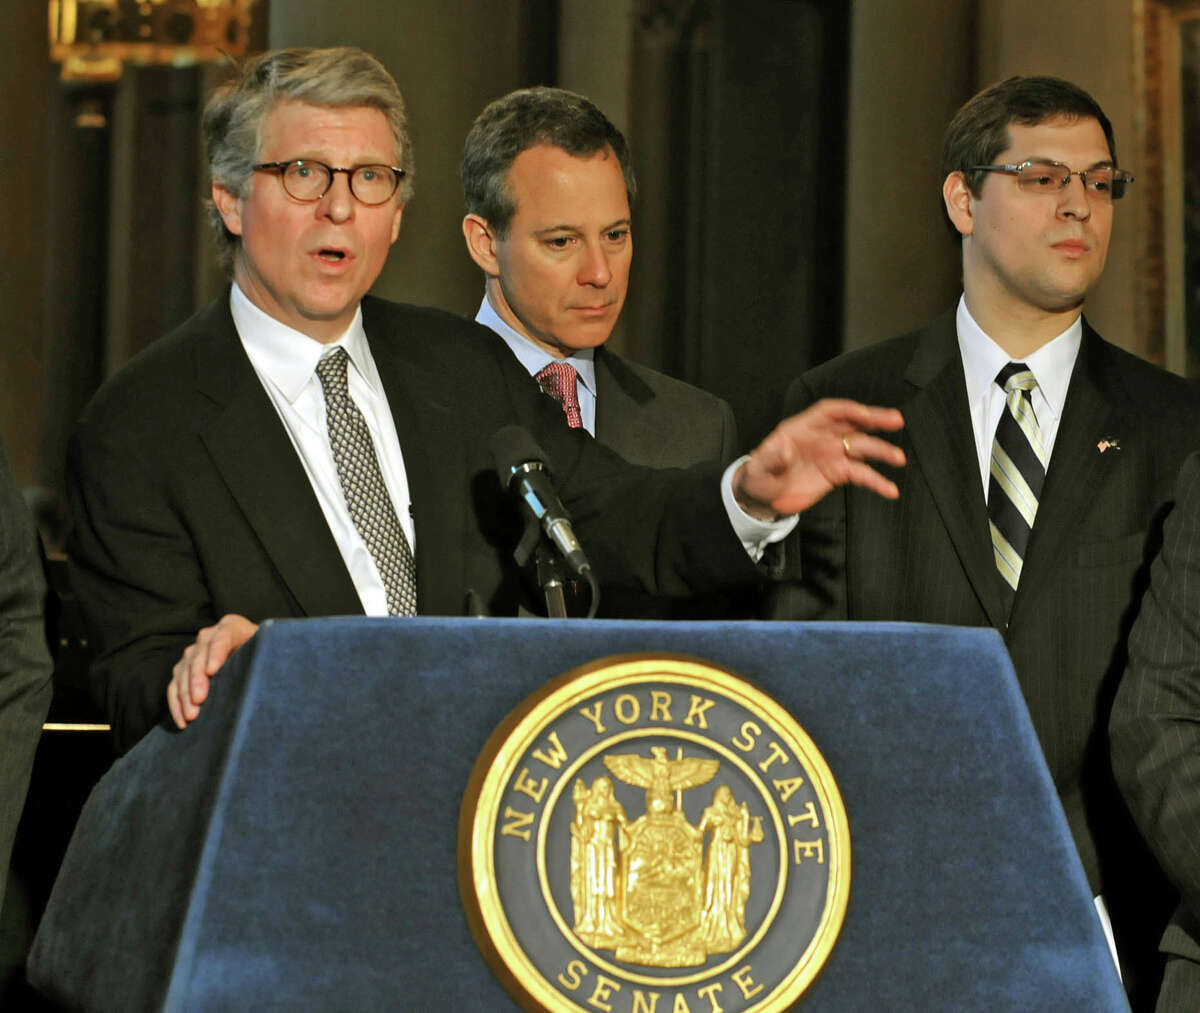 From left, Manhattan District Attorney Cyrus R. Vance, Jr. speaks during a press conference at the Capitol in Albany, NY on May 4, 2010. State Senator Eric Schneiderman and Assembly Member Micah Kellner listen in the background. For announcement of major reforms to combat public corruption. (Lori Van Buren / Times Union)